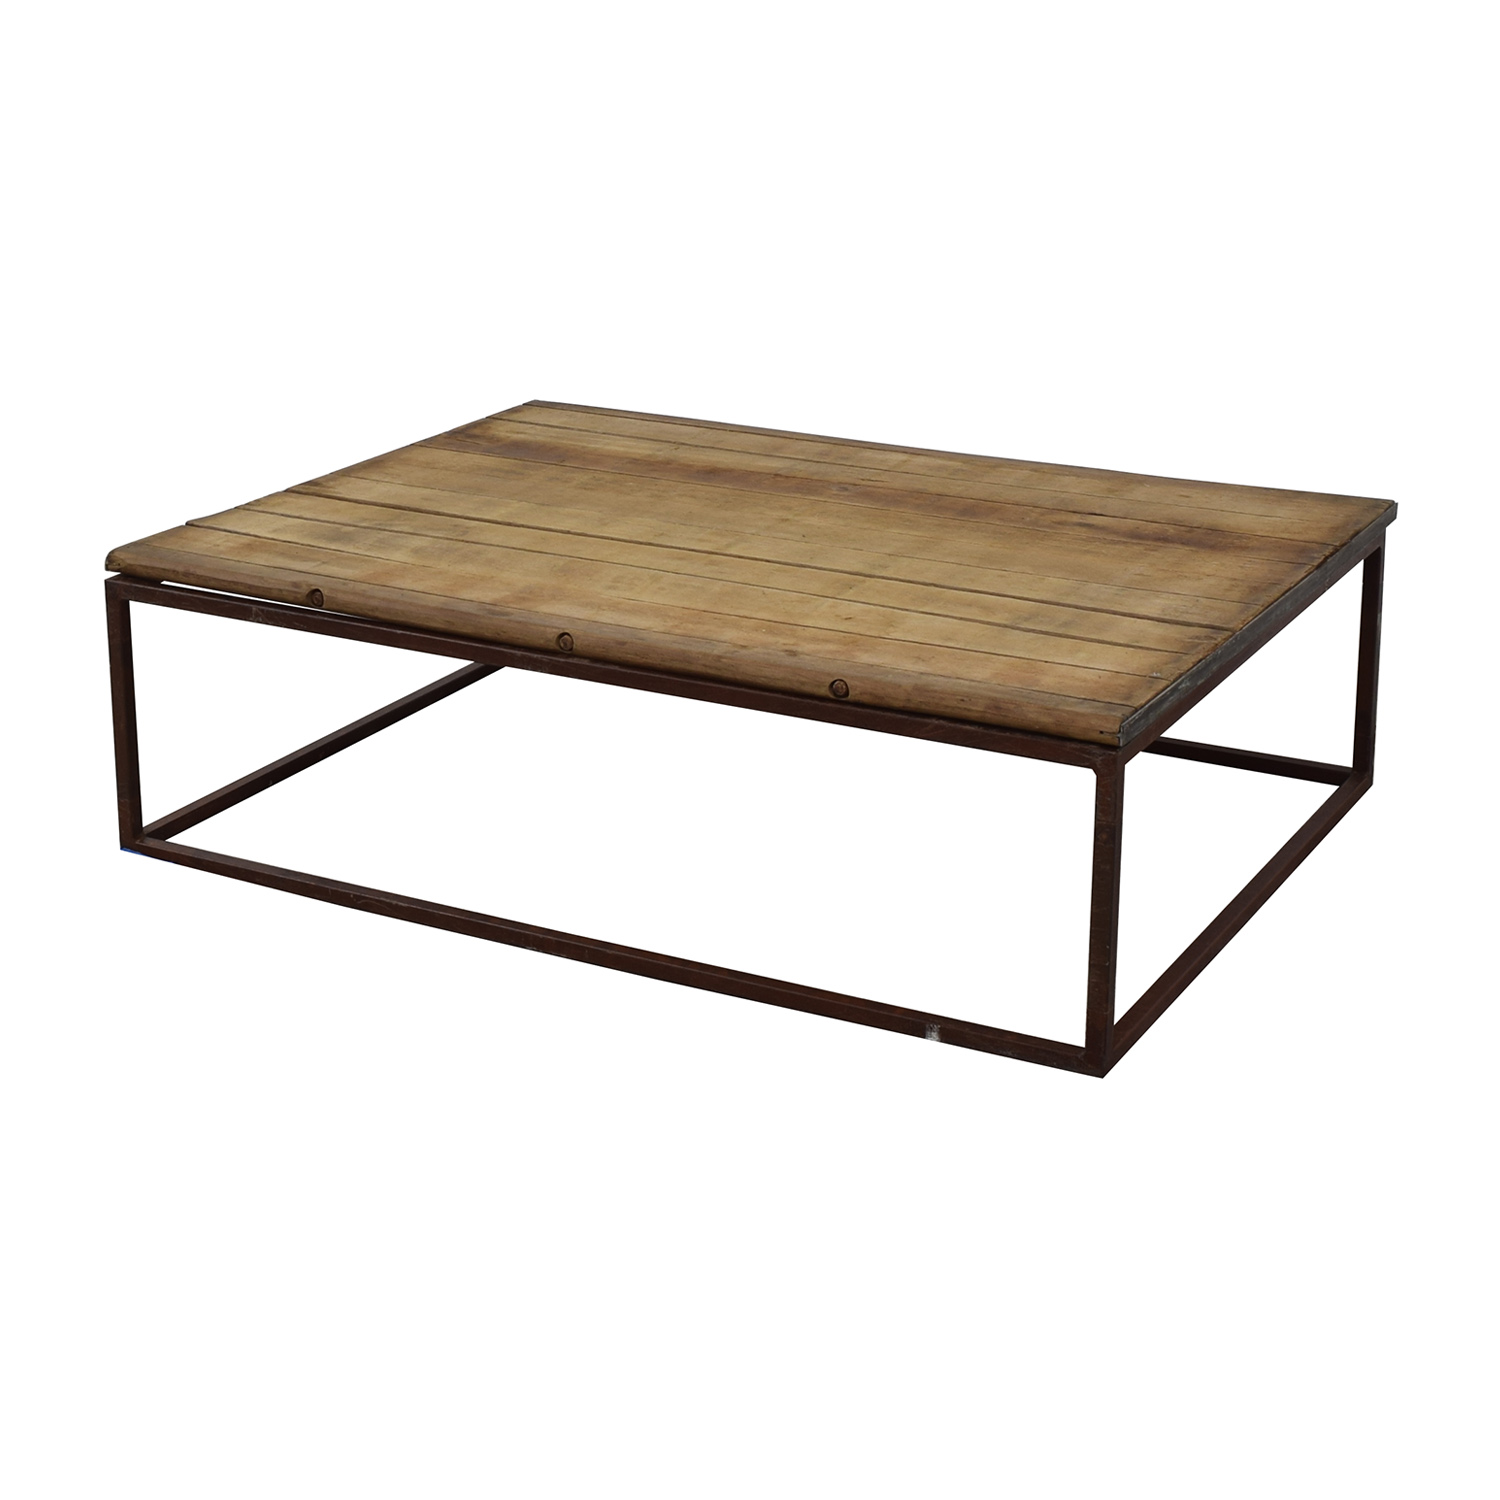 John Derian Coffee Table nj